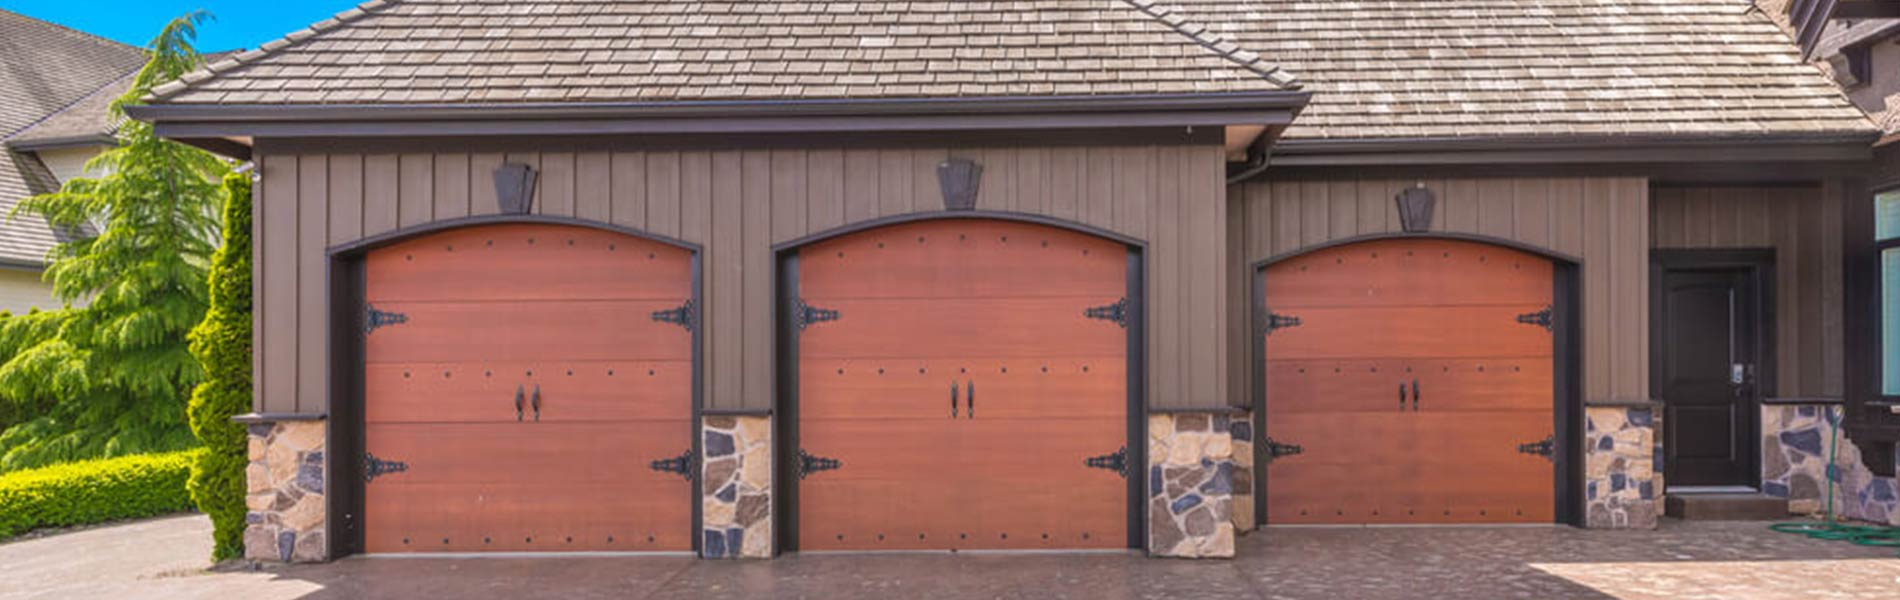 Golden Garage Door Service, Orange, CA 714-786-4122